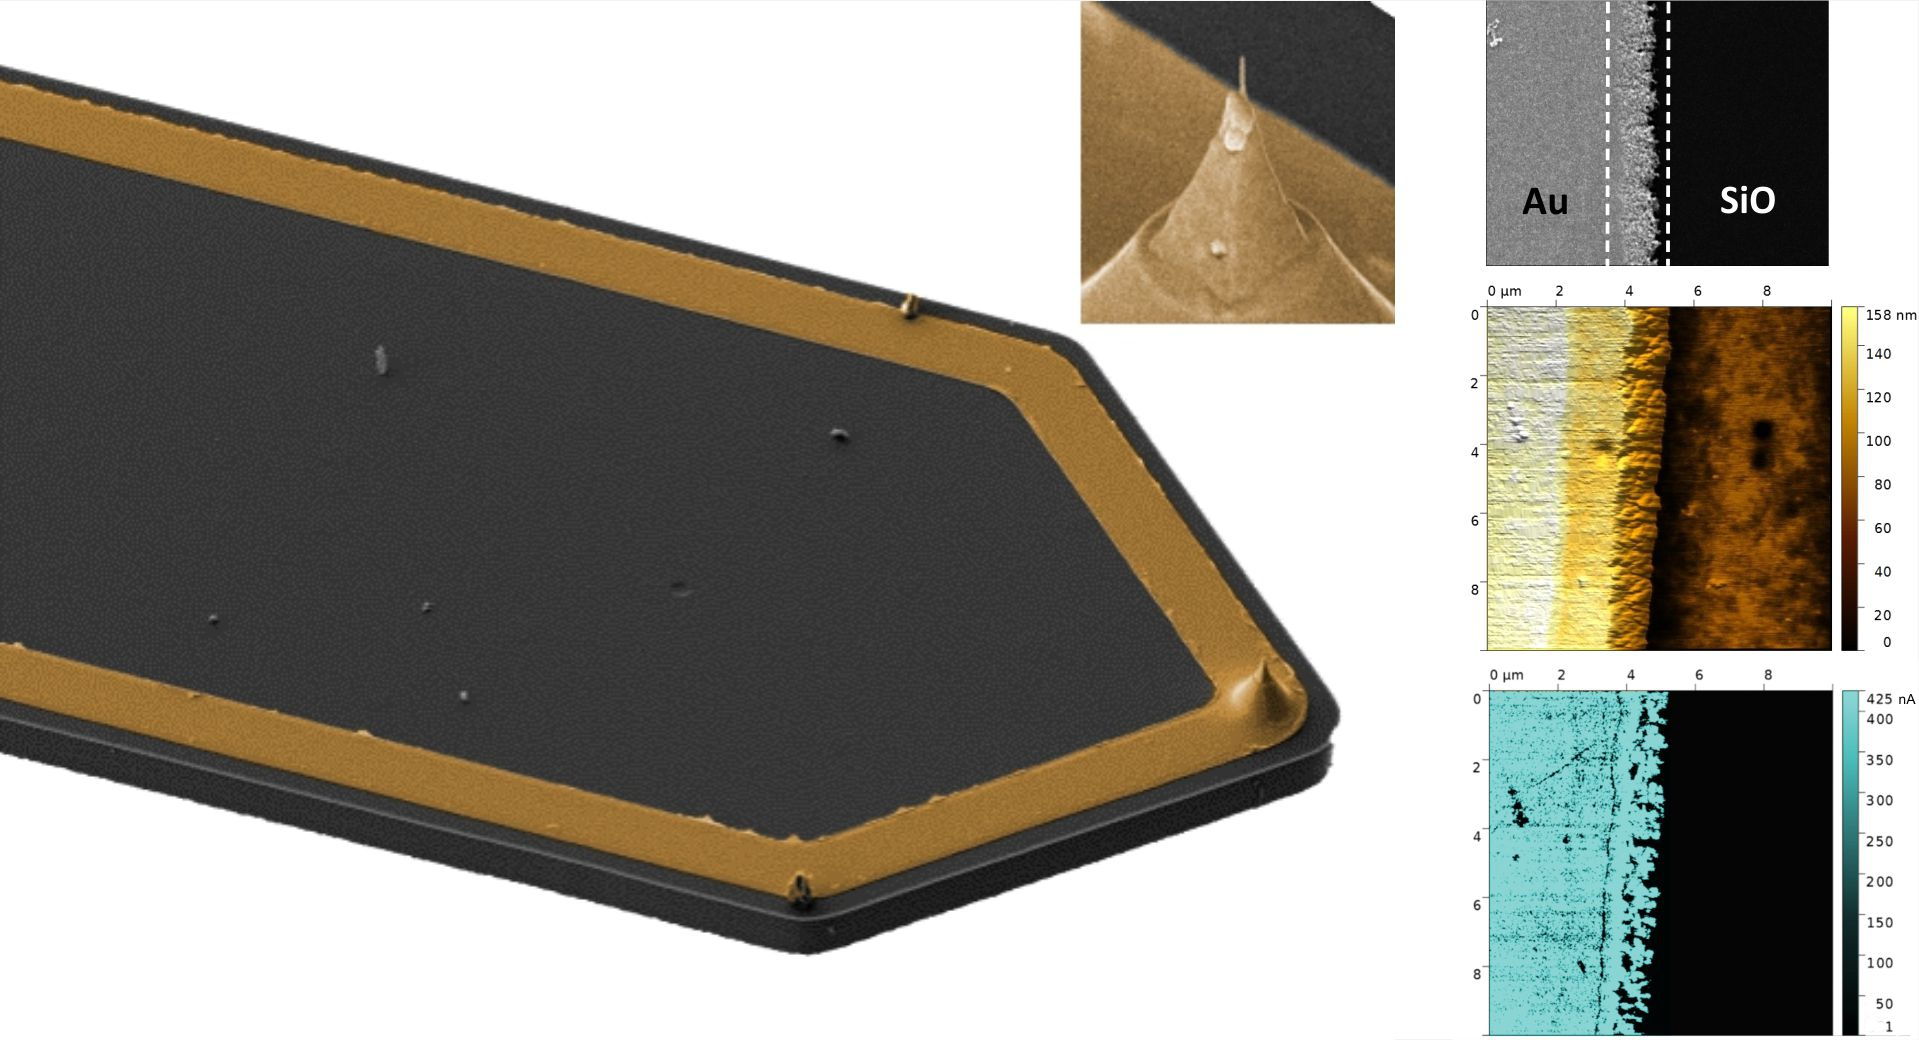 AFSEM offers a solution for conductive AFM with self-sensing cantilevers